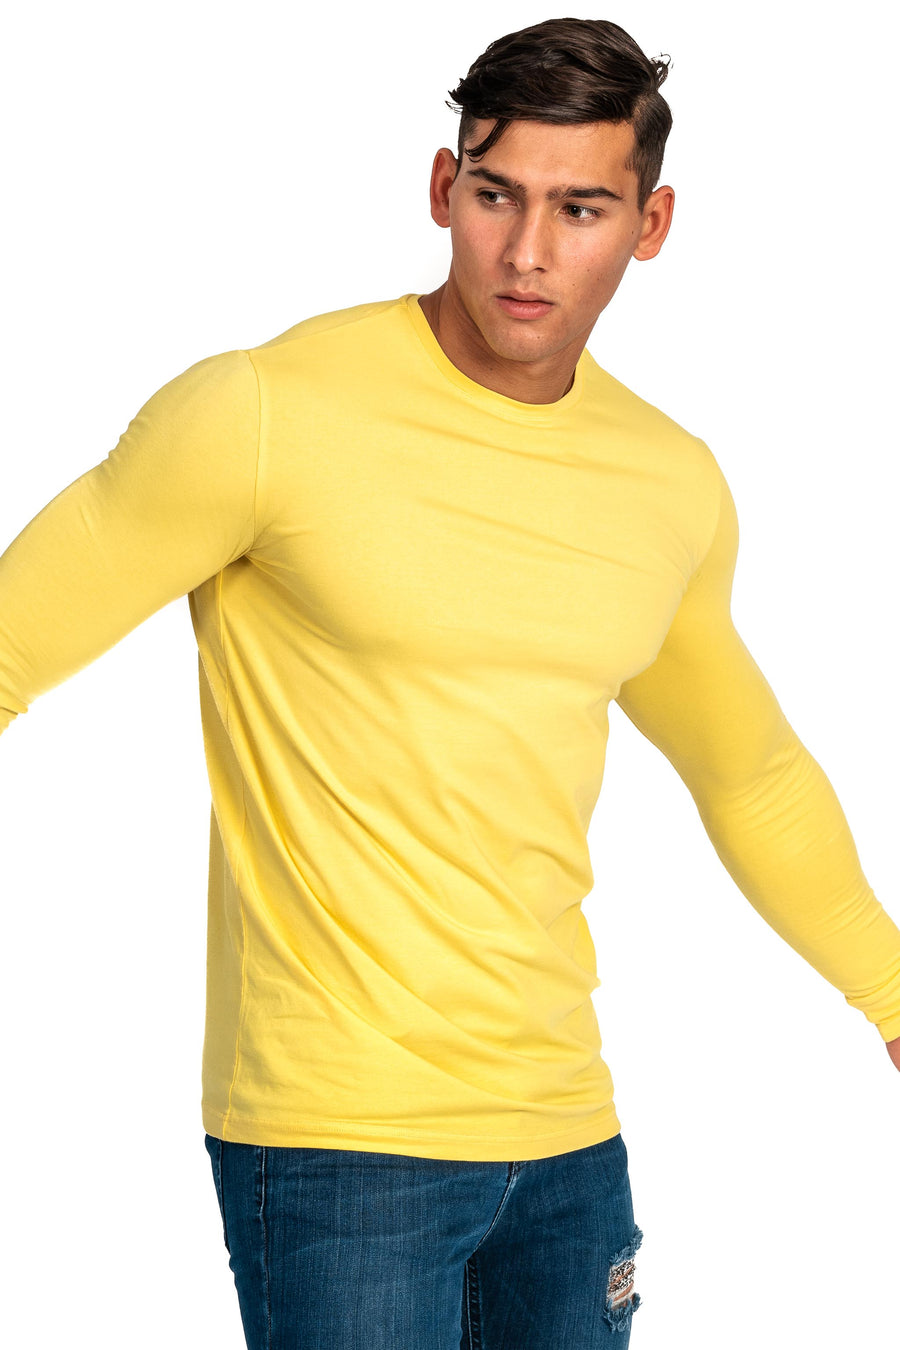 Mens Long Sleeve T-Shirt - Aspen Yellow